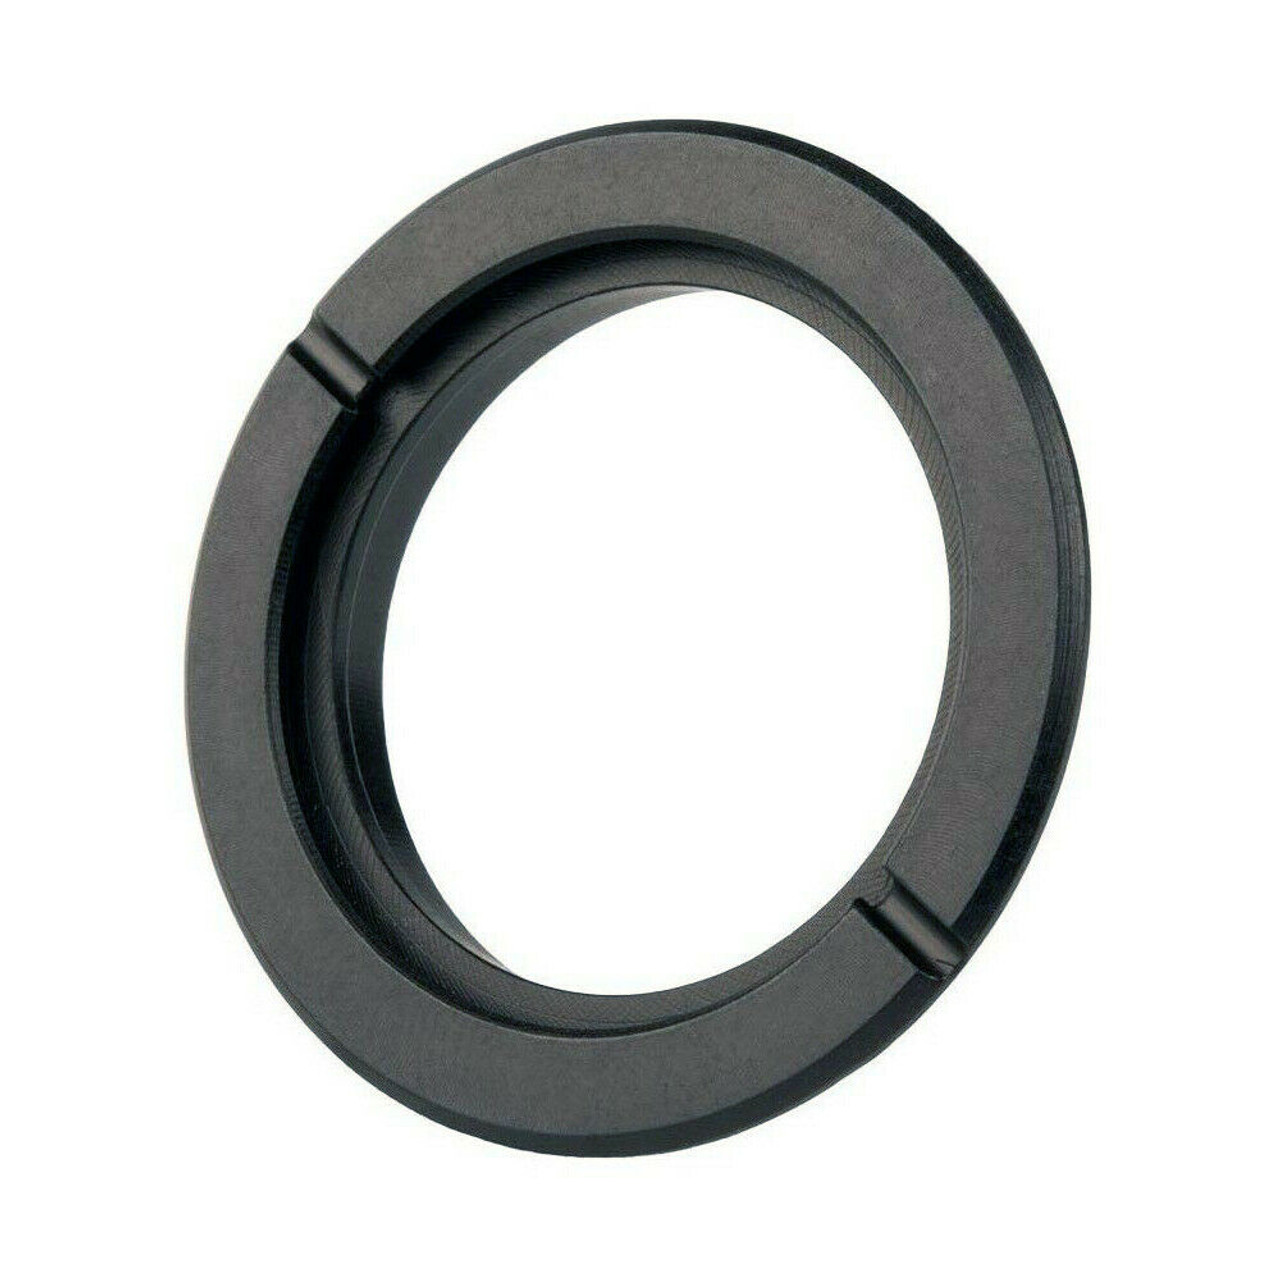 Night Vision Eyepiece Retaining Ring for PVS-14, 6015, Anvis Eyecup Retainer NEW